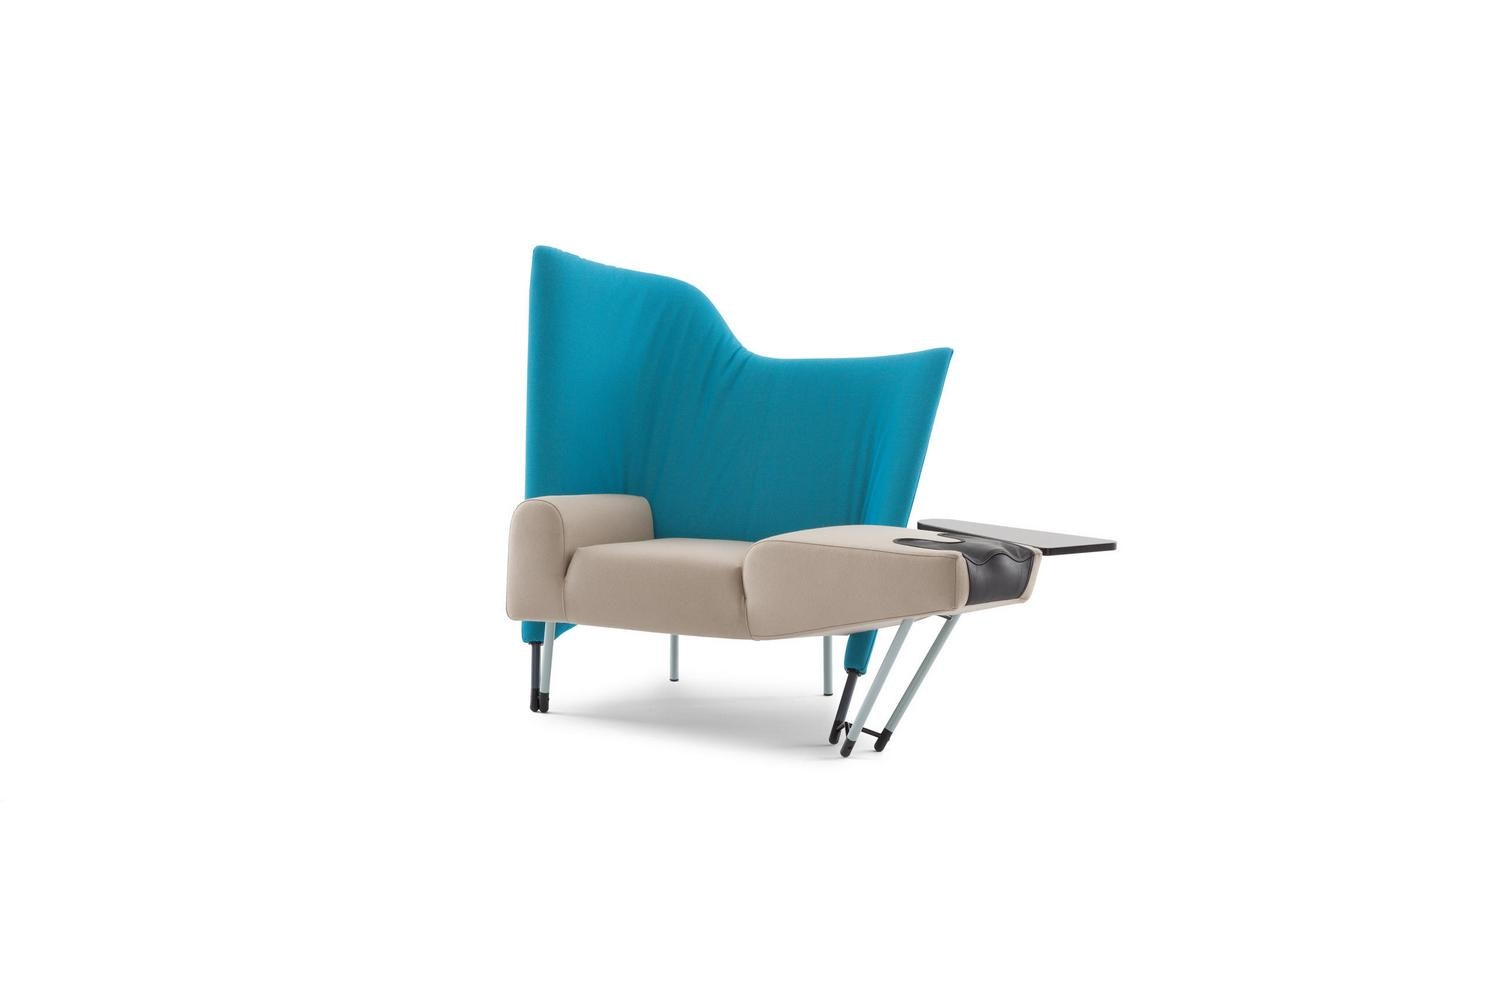 654 Torso Armchair by Paolo Deganello for Cassina